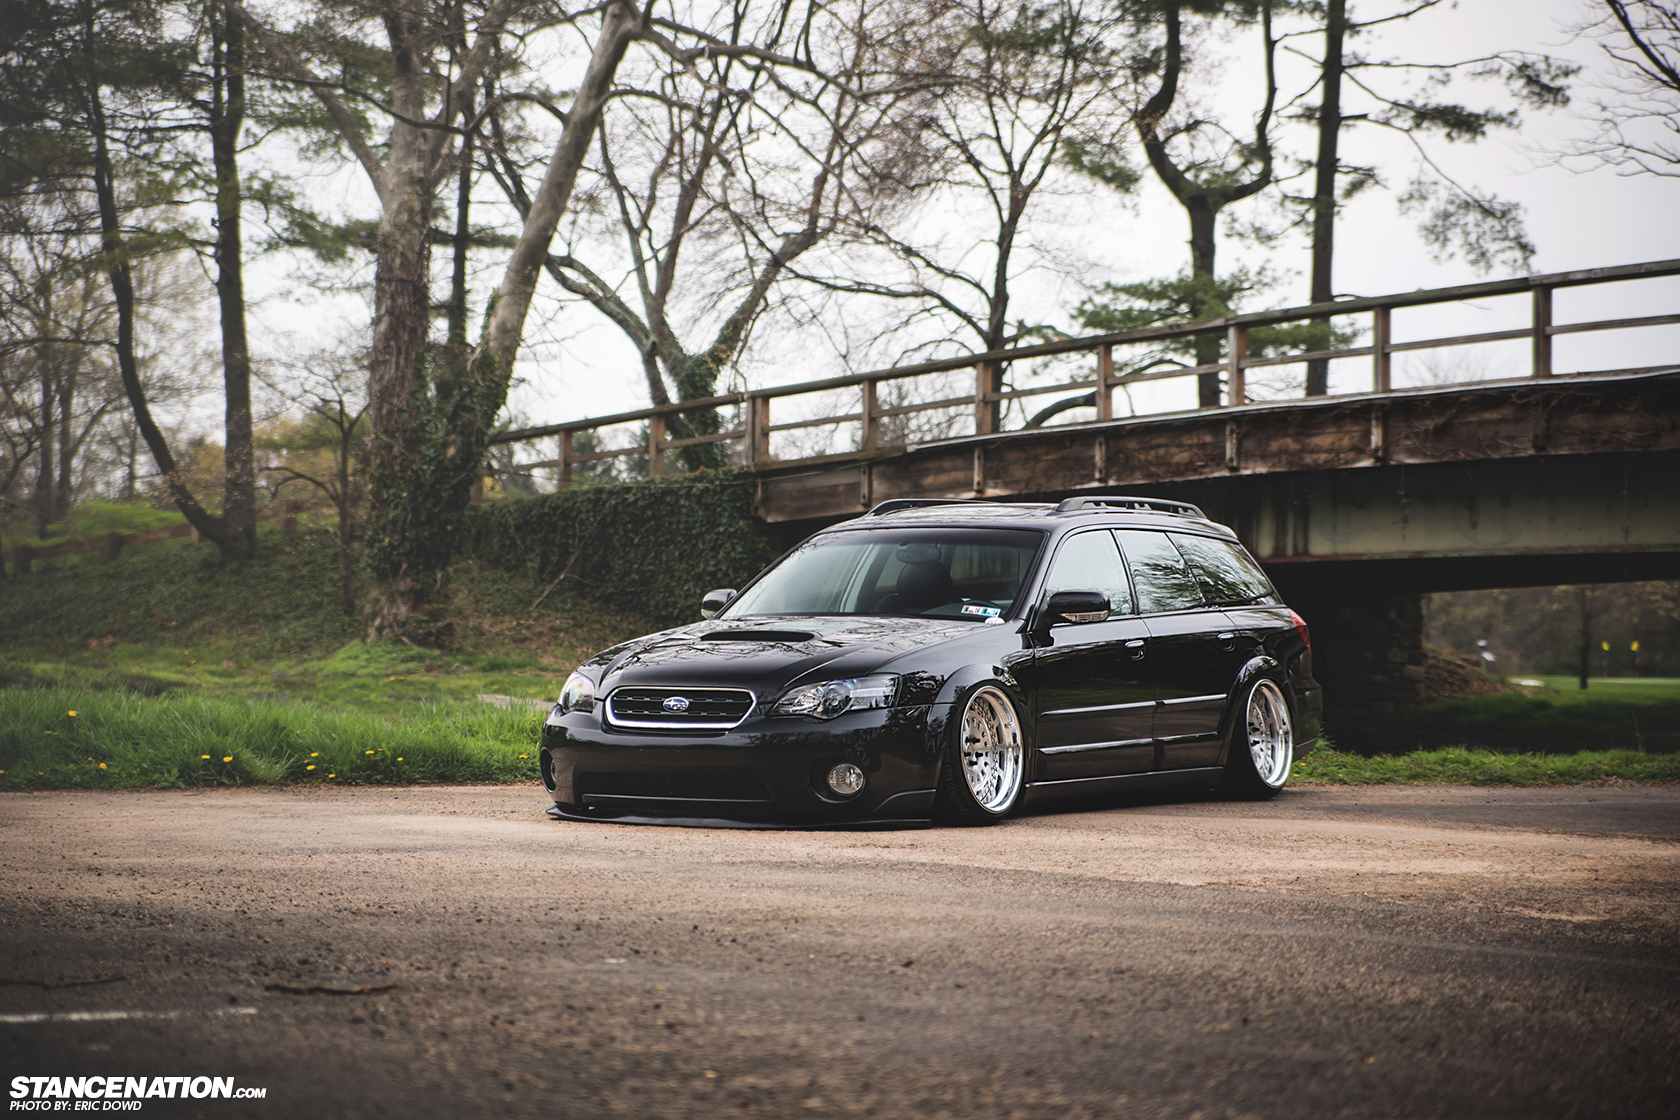 Getting It Jay S Bagged Subaru Legacy Outback Stancenation Form Gt Function